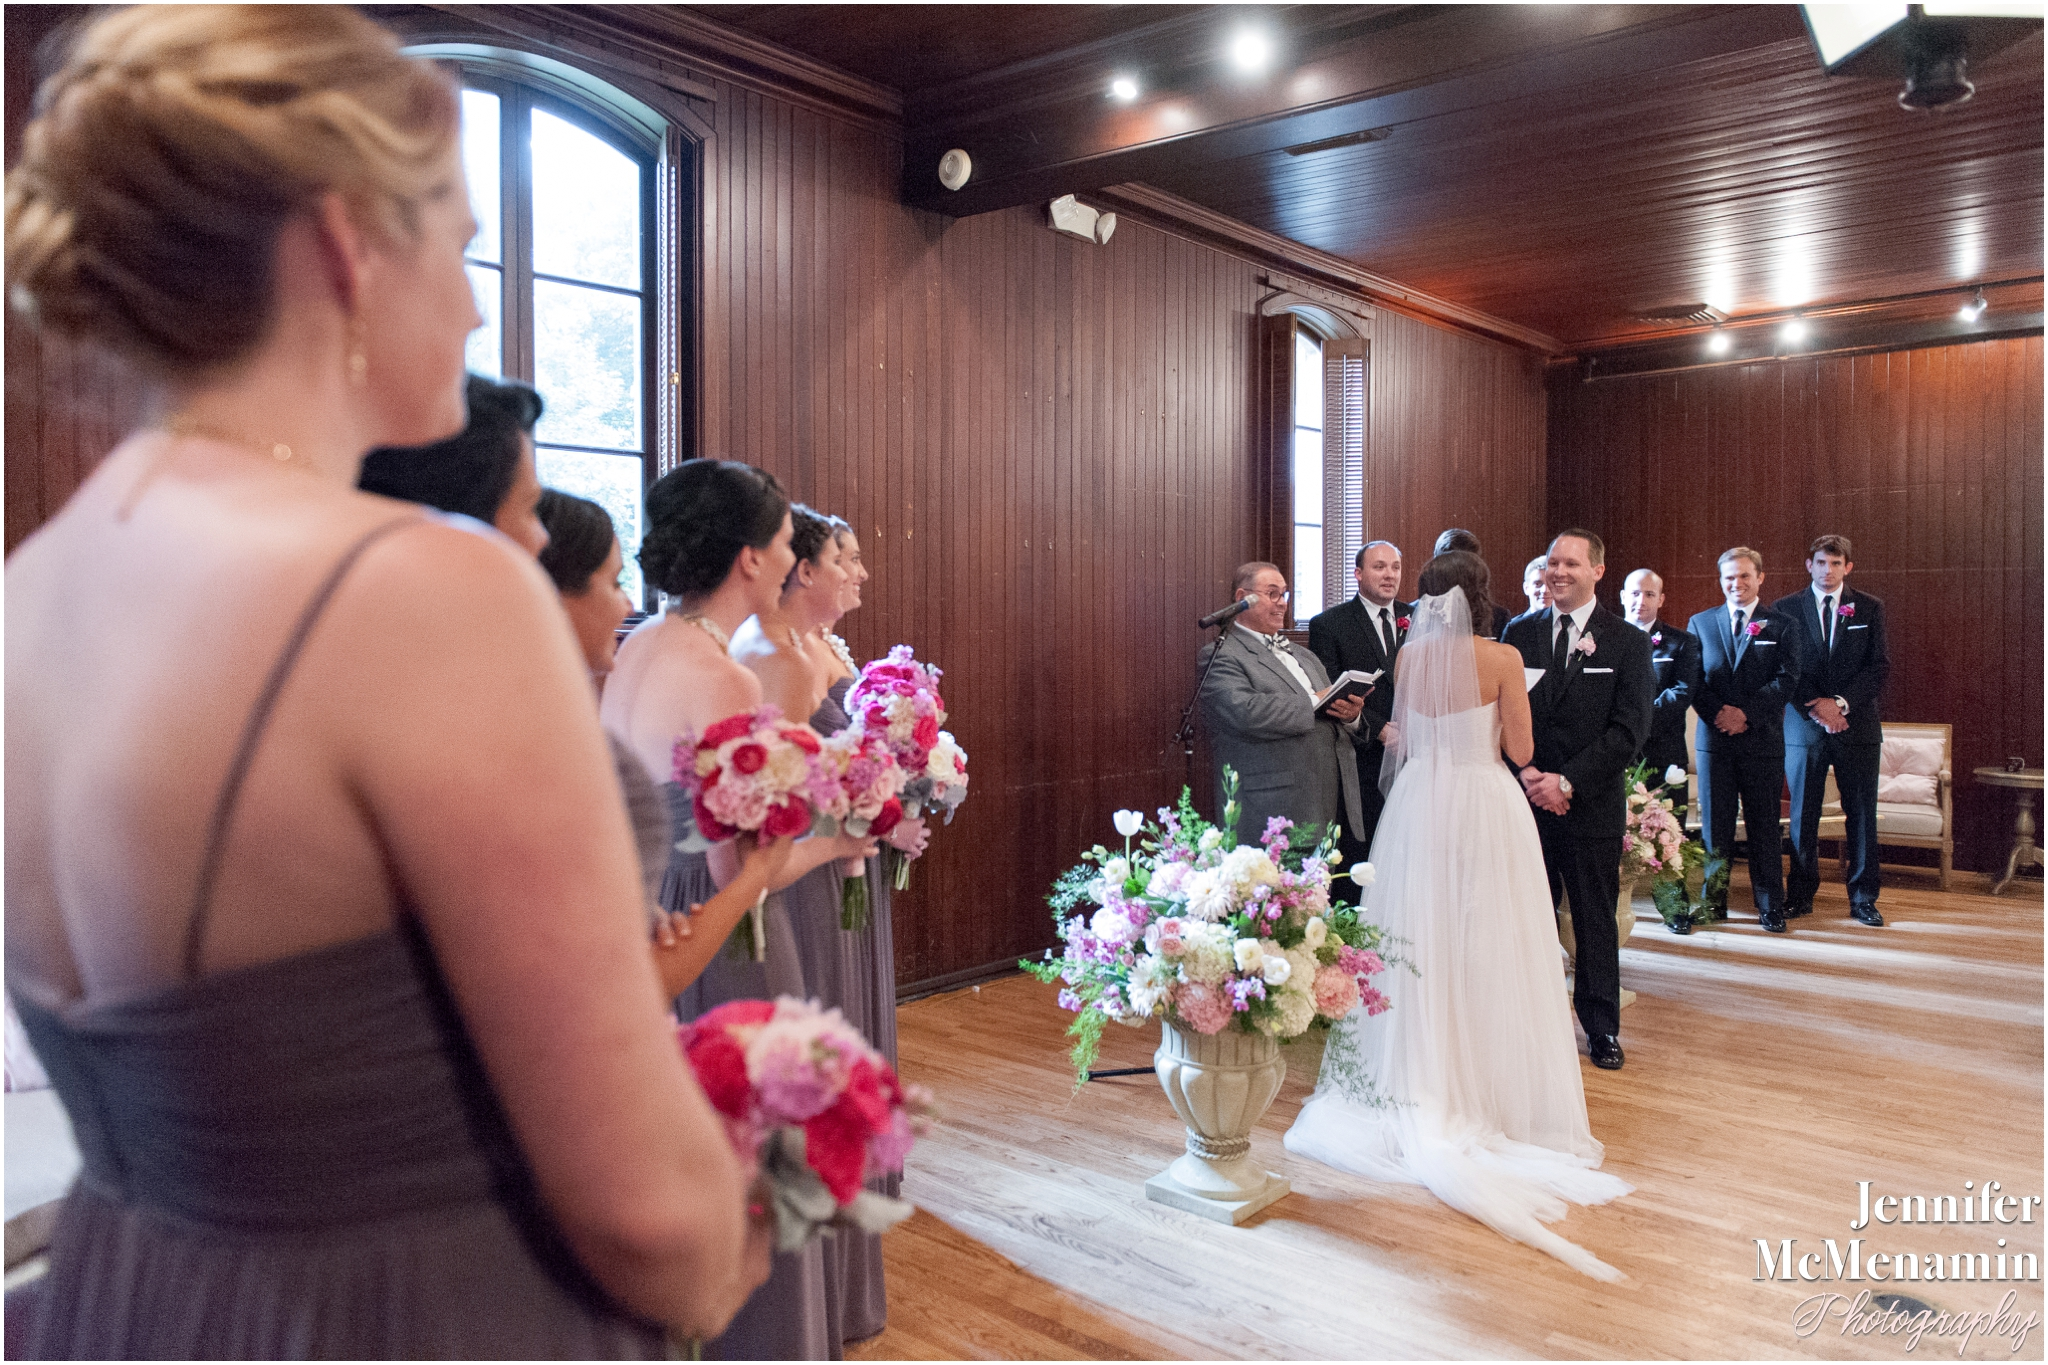 0078-BlumWilliams_03057-0575_JenniferMcMenaminPhotography_Evergreen-Museum-Carriage-House_Baltimore-wedding-photography_Baltimore-wedding-photographer